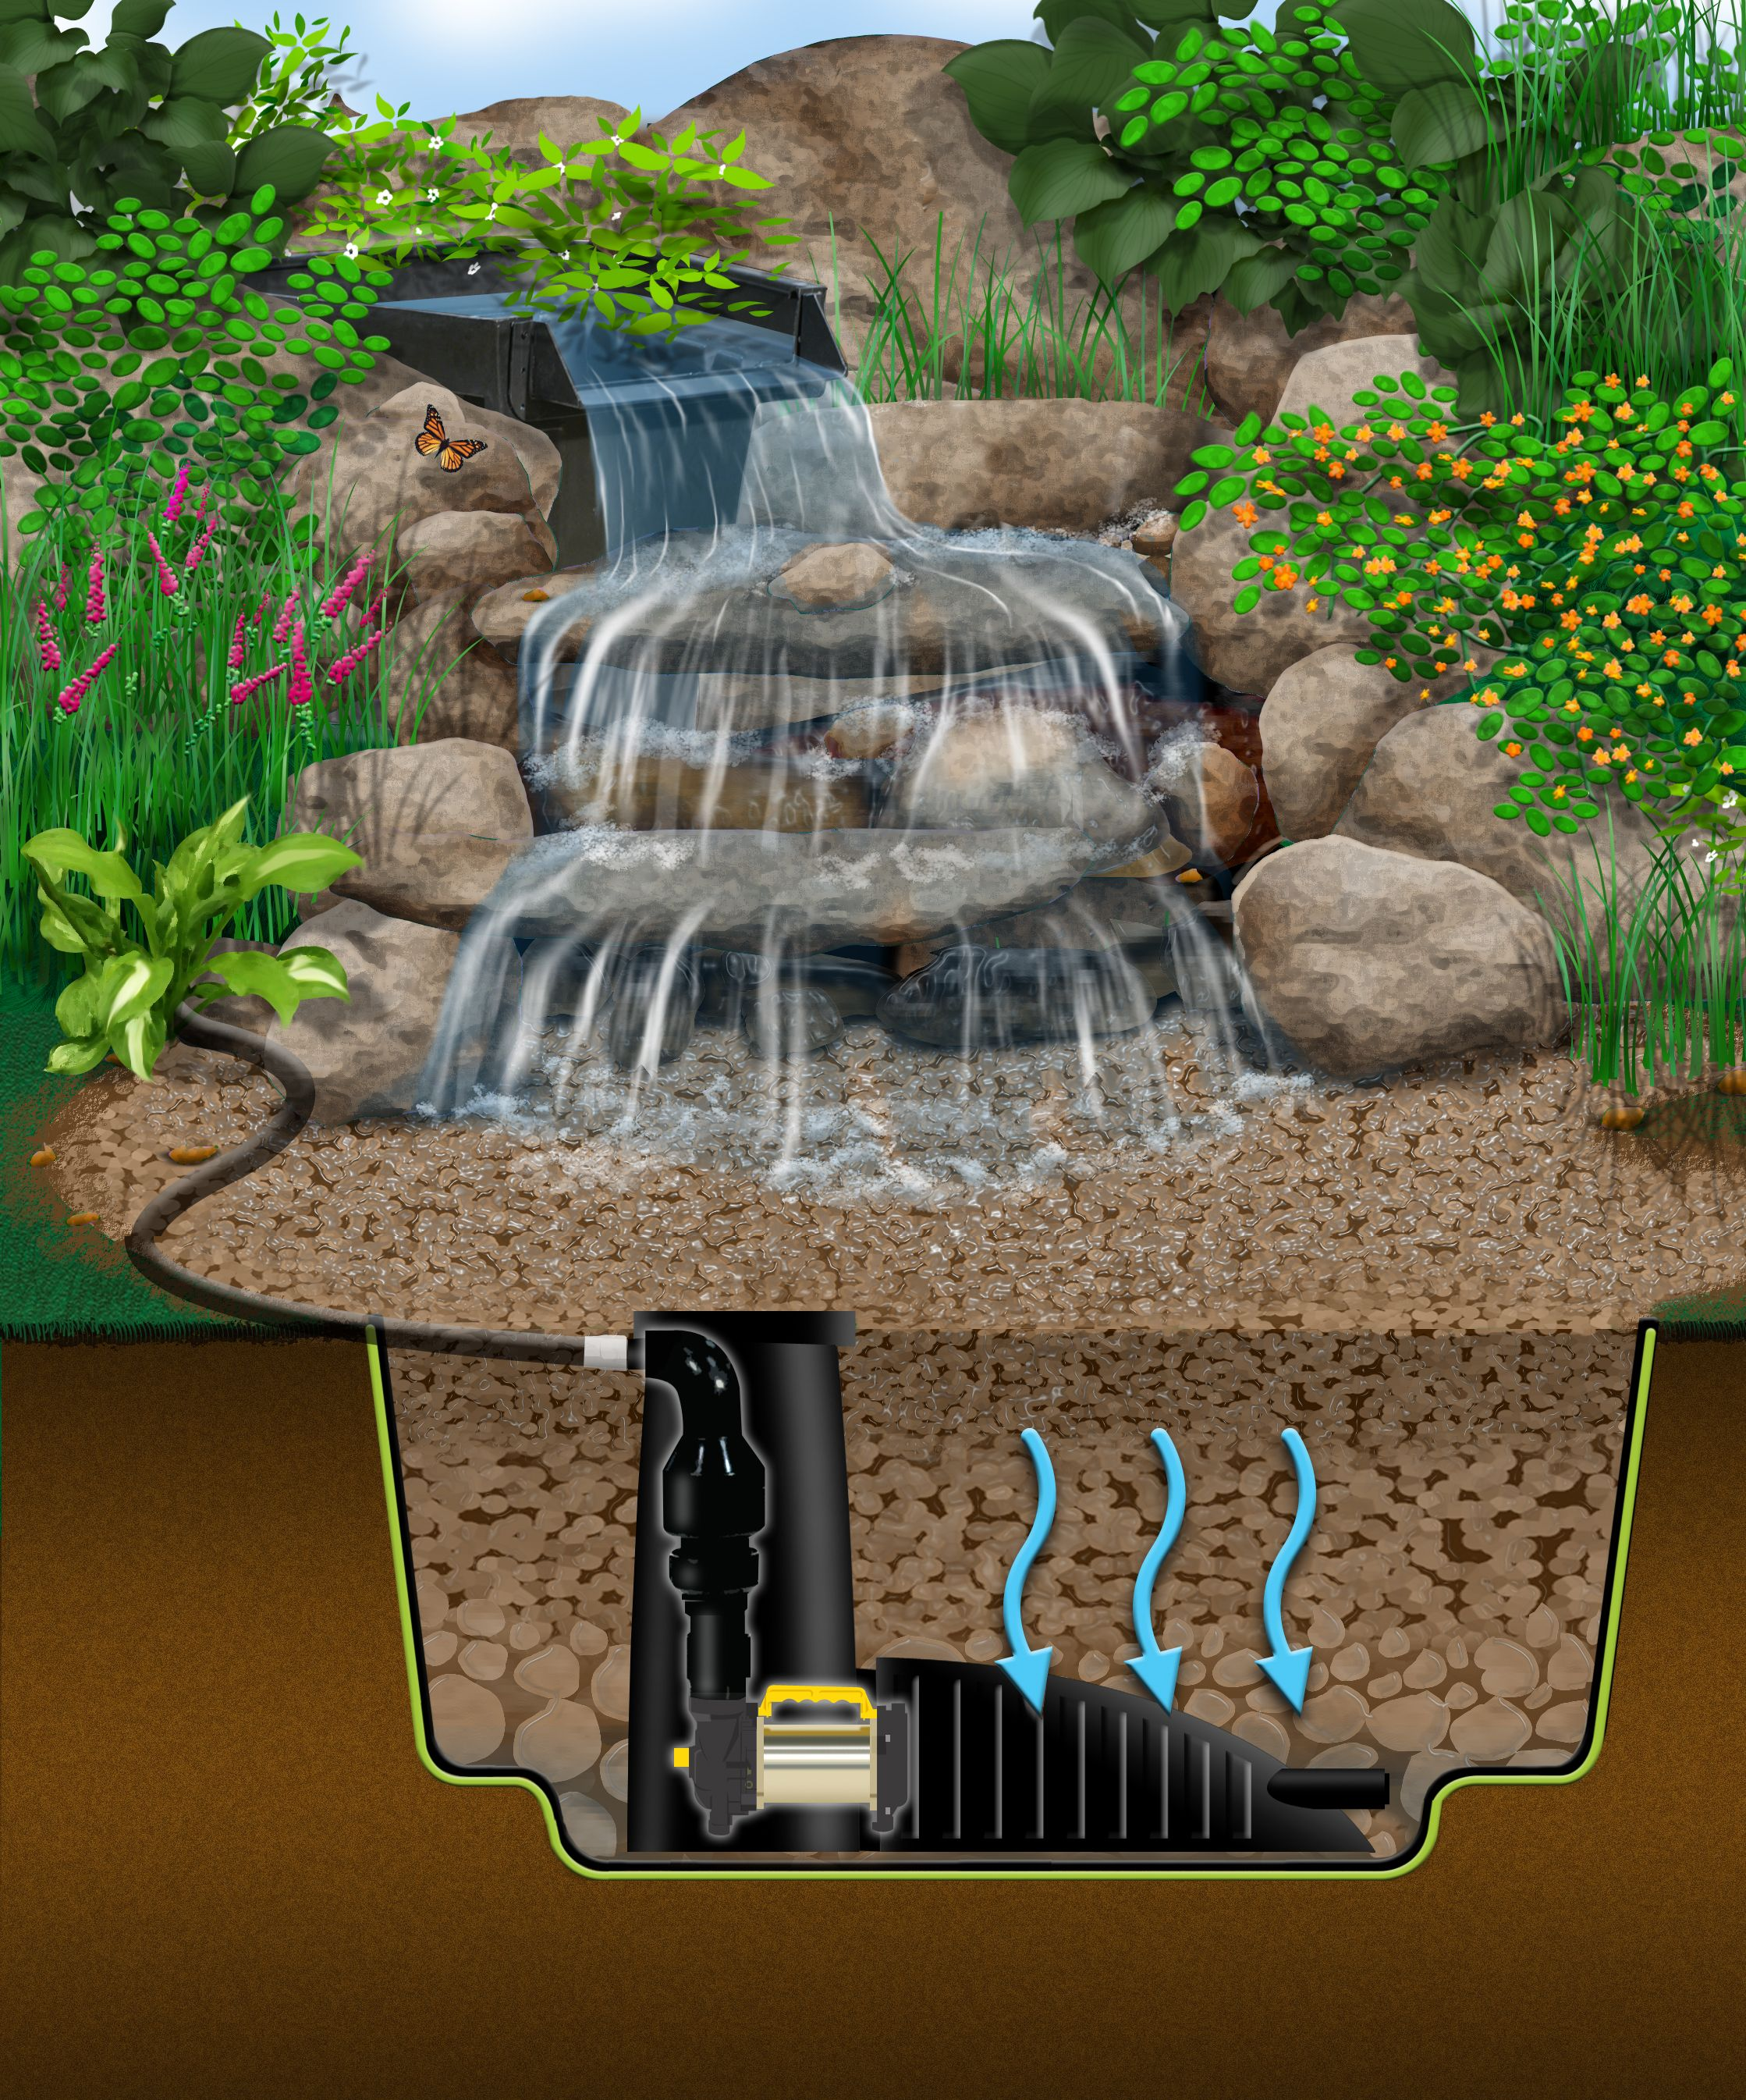 Maintenance Free Garden Ideas how to create low maintenance garden front yard landscaping ideas Garden Ideas Photos Of Small Natural Waterfalls The Pondless Waterfall Is Virtually Maintenance Free